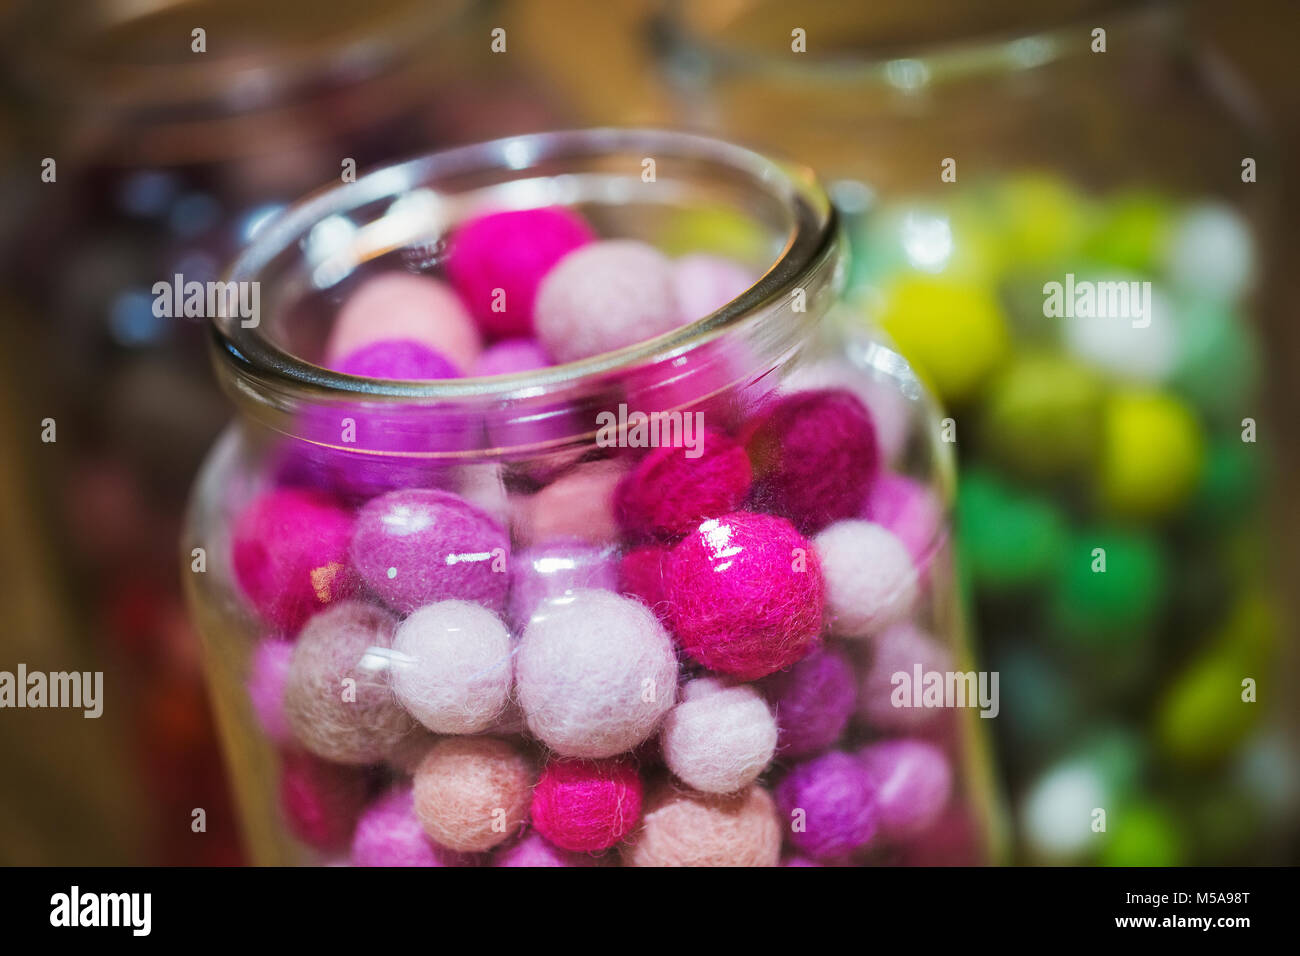 Close up of glass jars with selection of colourful small fabric balls. - Stock Image